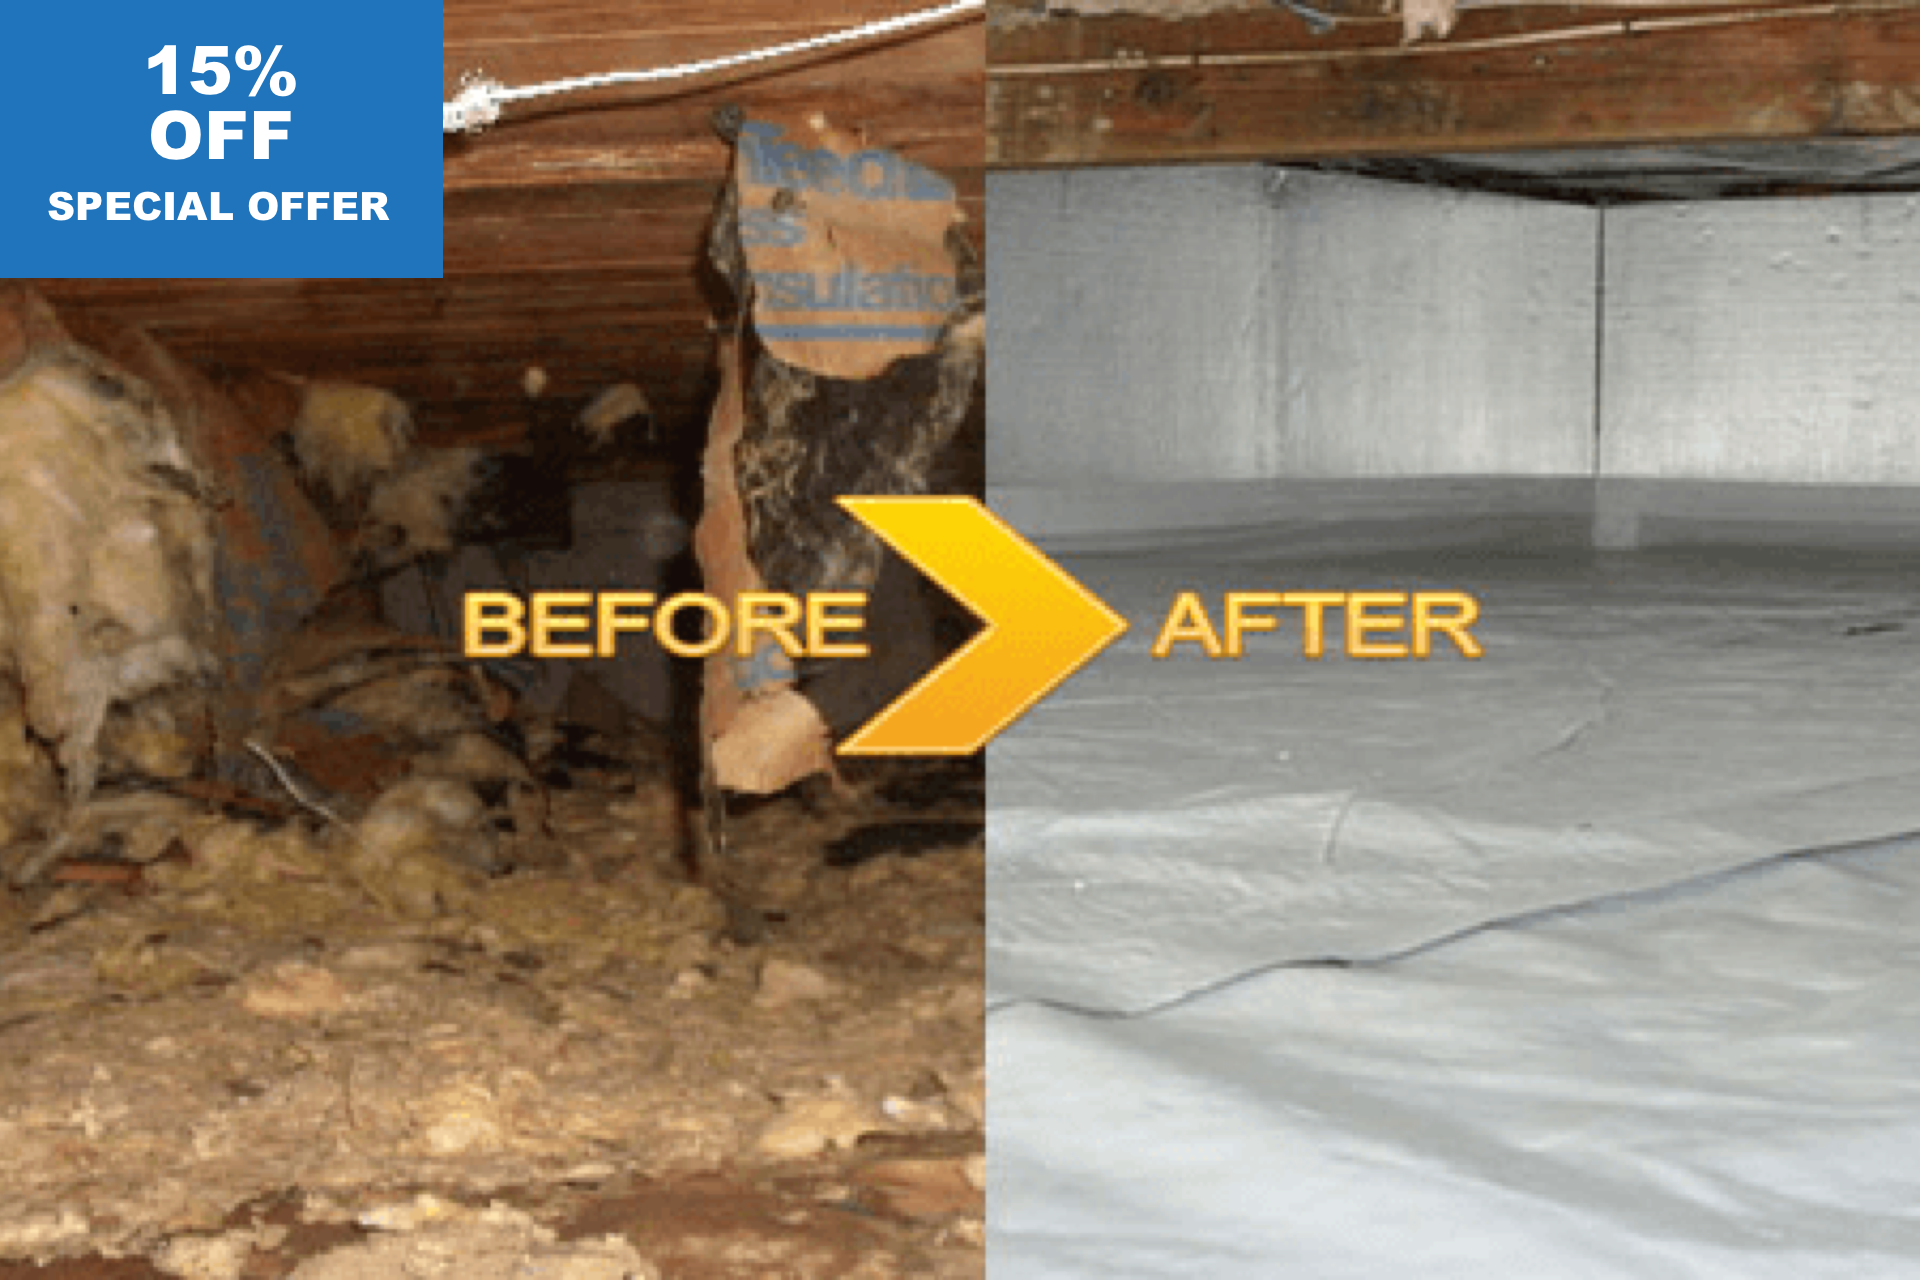 15% Off on Attic & Crawl Space Clean Up